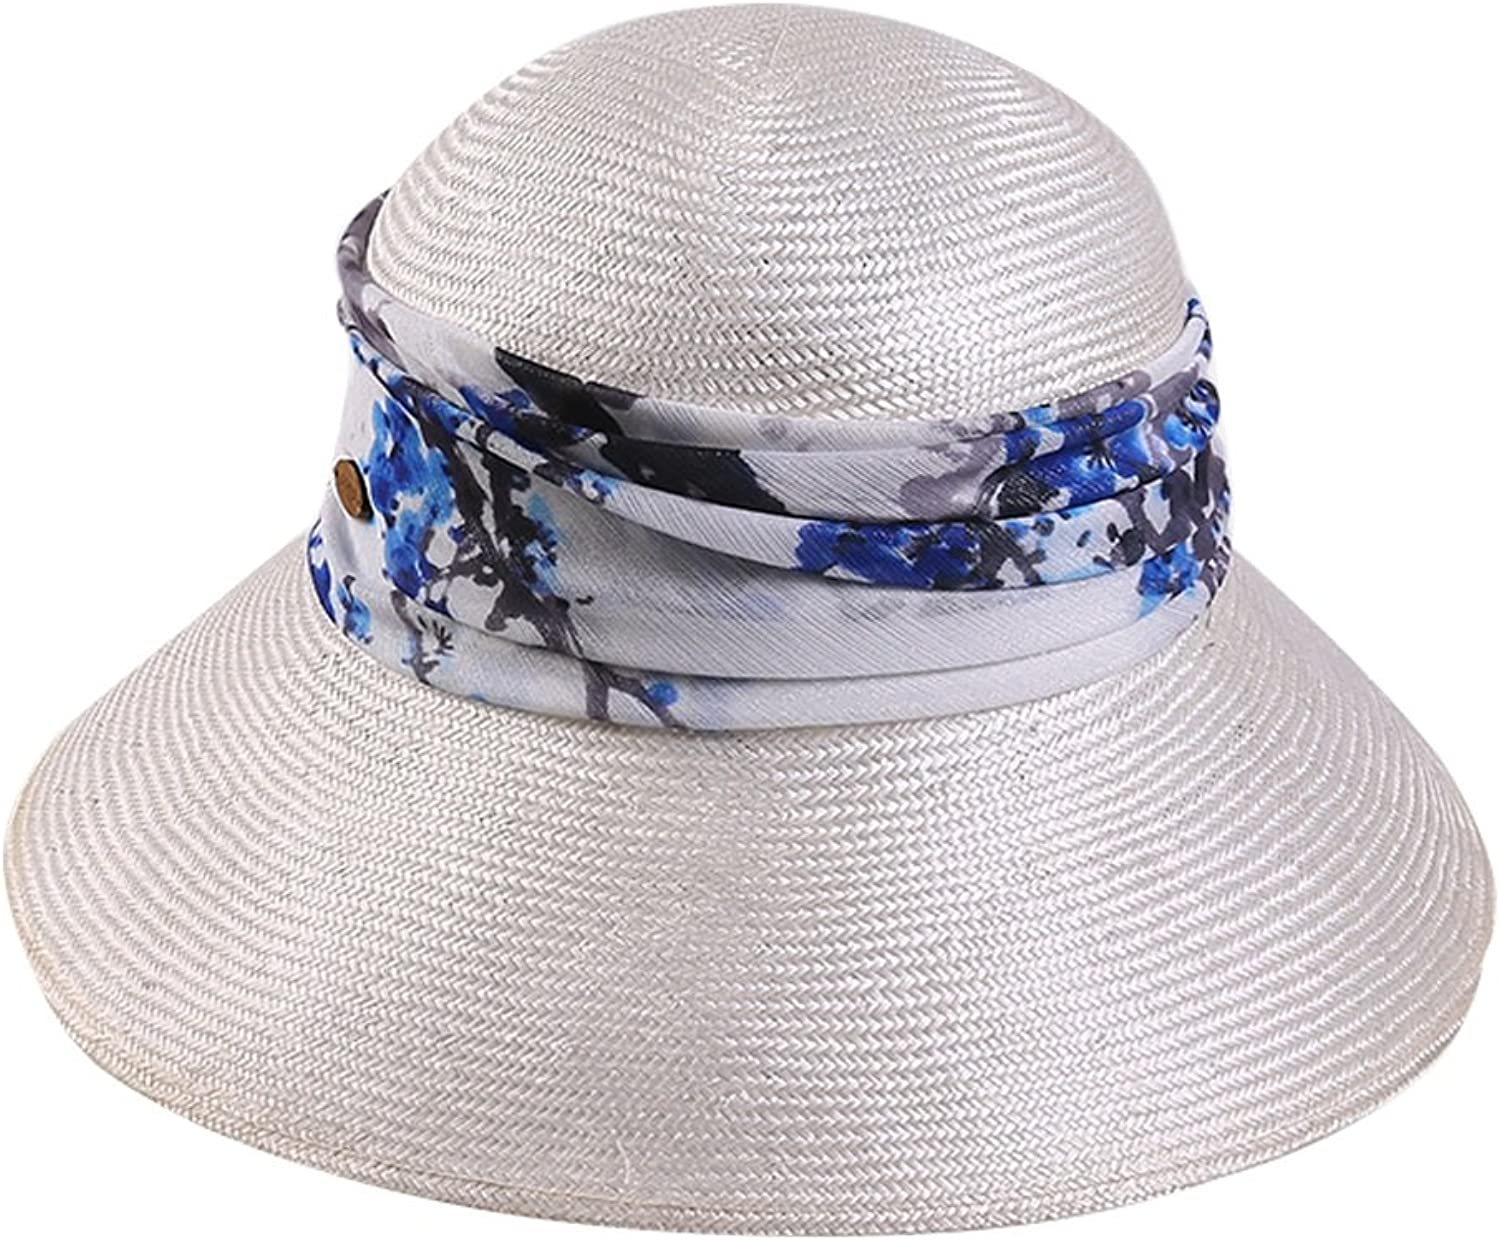 Hat Female Summer Seaside Beach Visor Foldable Printed Decorative Hat Casual Shopping Cool Hat (color   White)